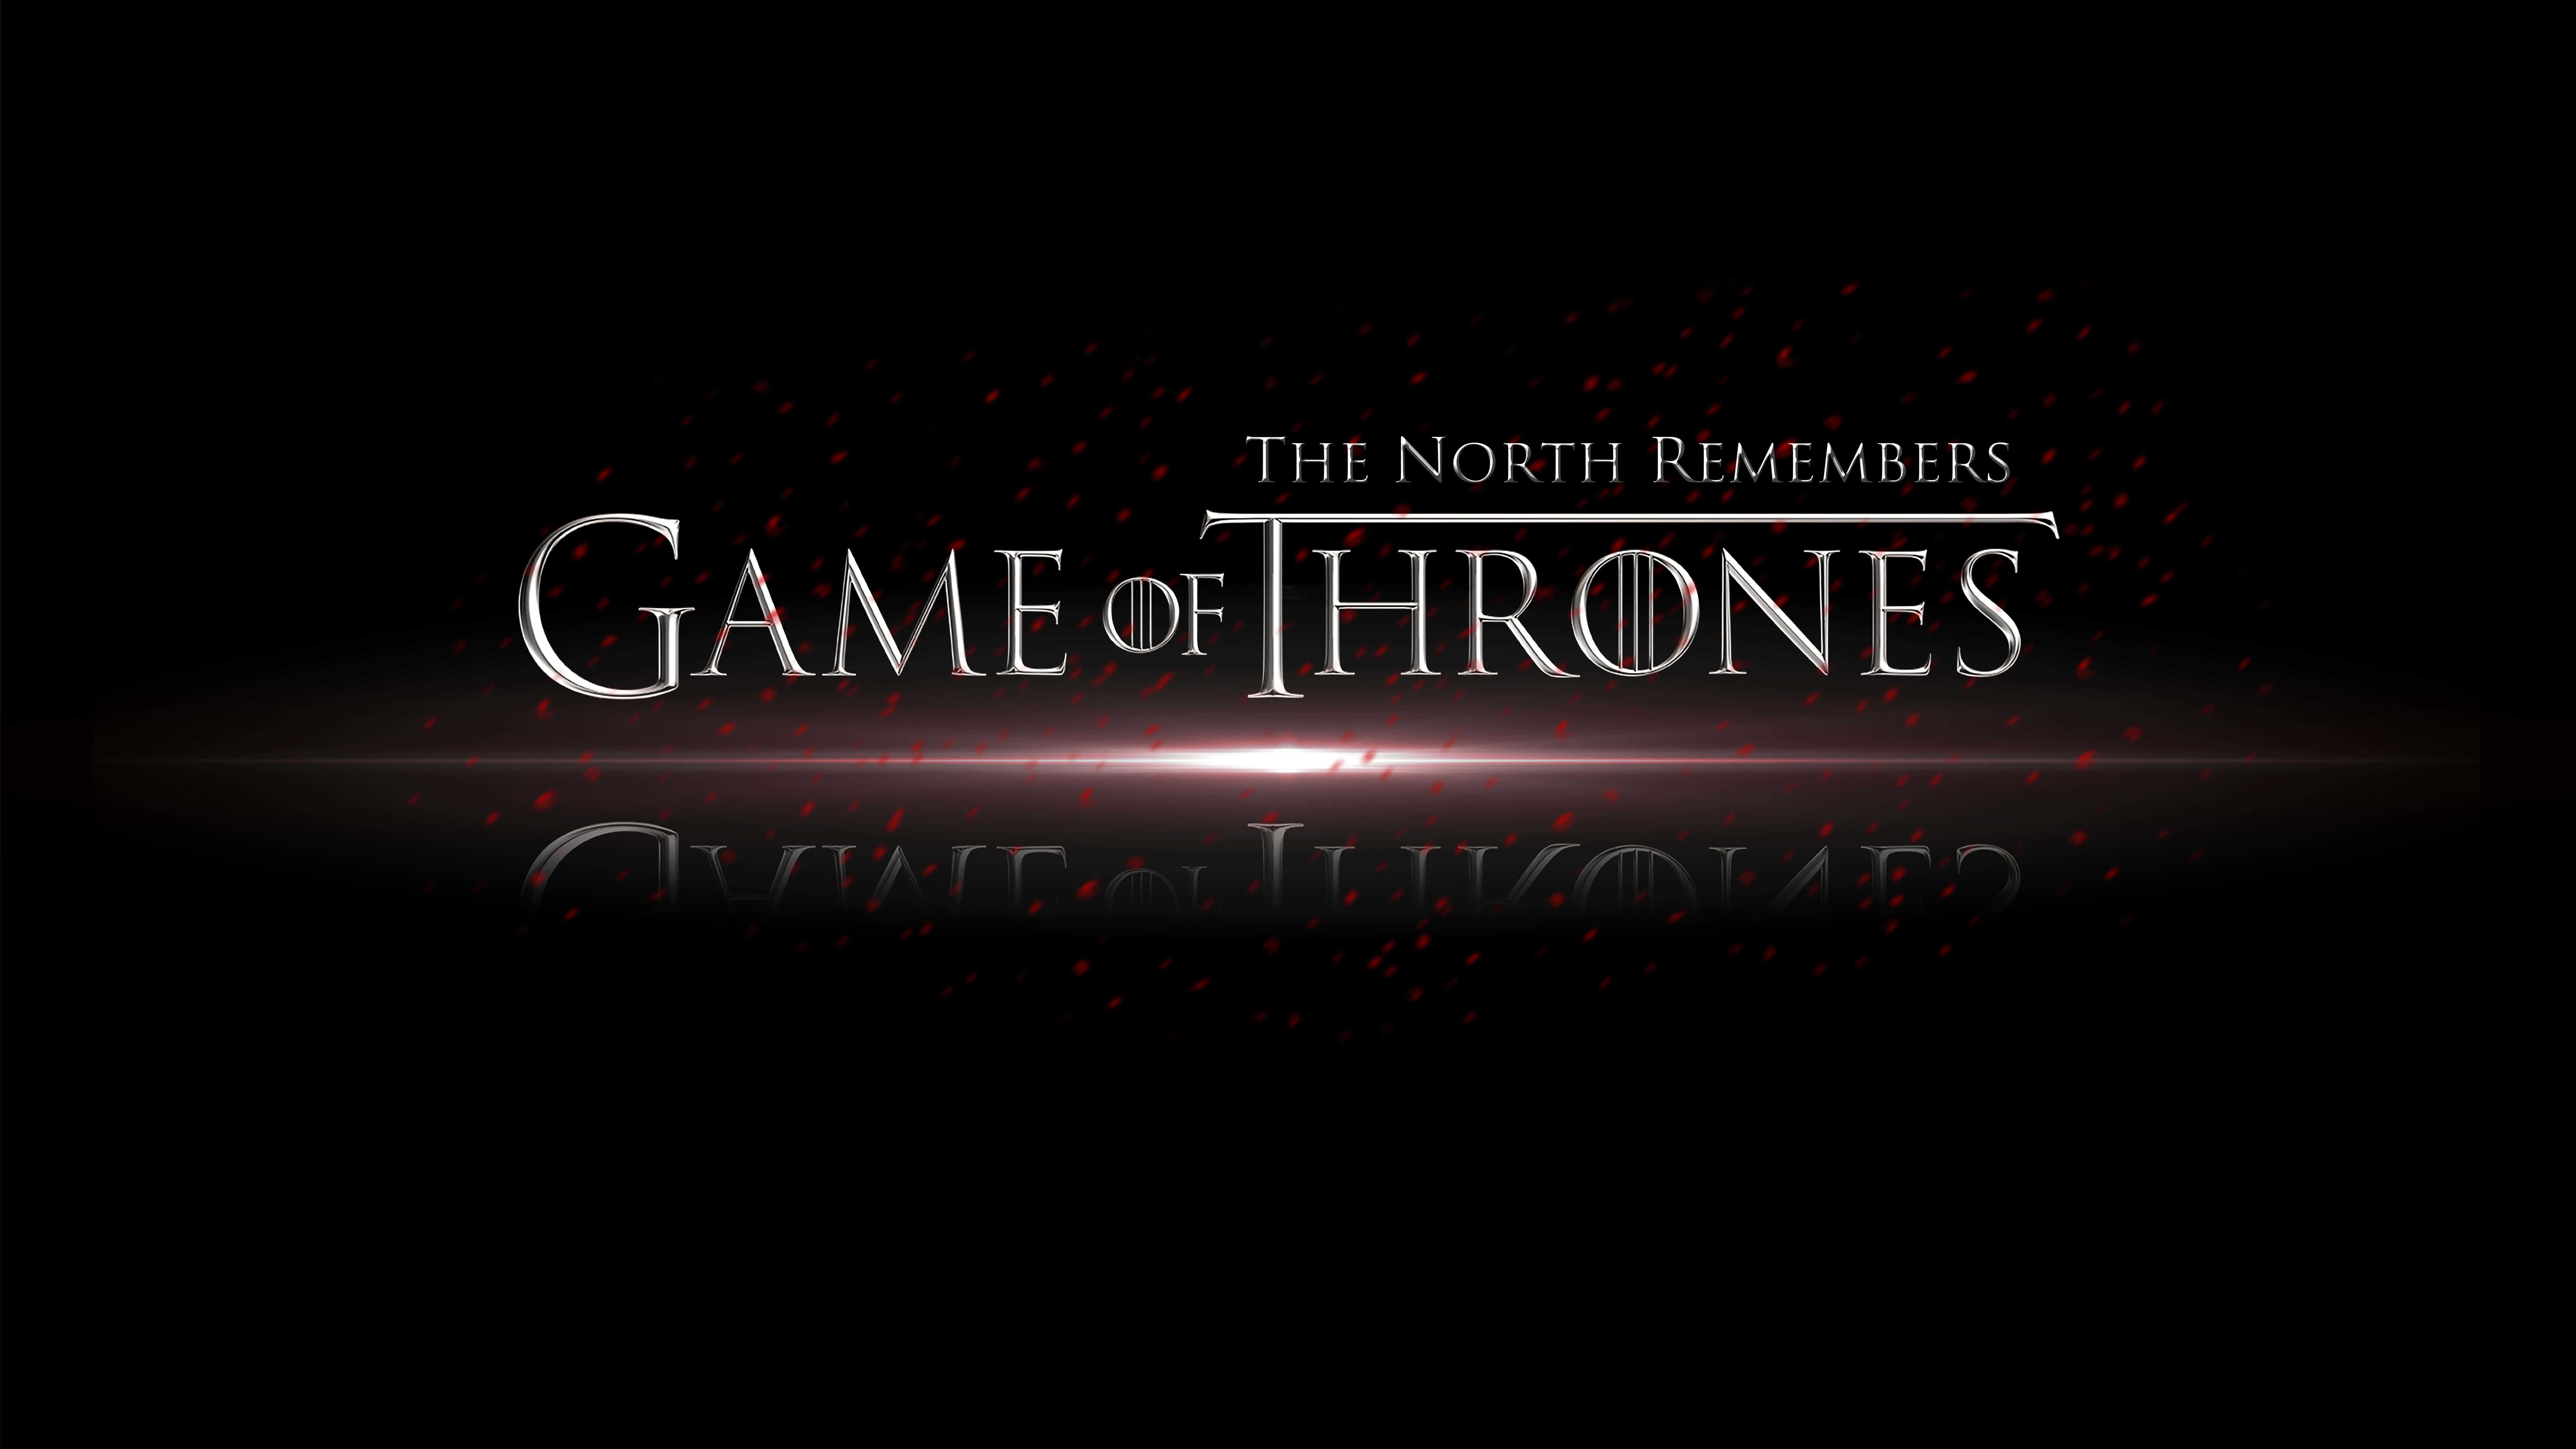 Game Of Thrones The North Remembers UHD 8K Wallpaper Pixelz 7680x4320